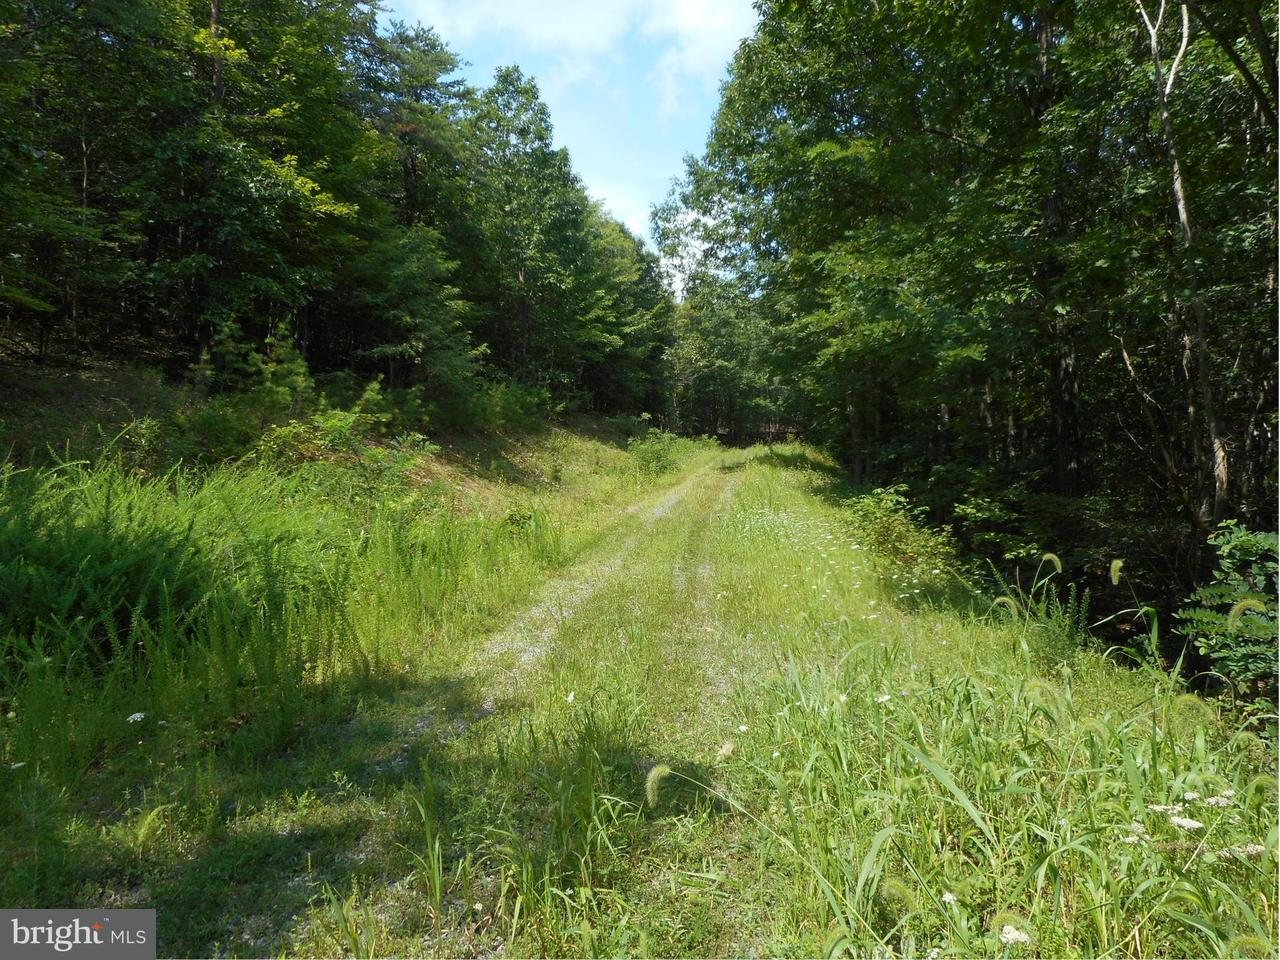 Land for Sale at Off Rt 28 /pPssin wWnd hH Springfield, West Virginia 26763 United States